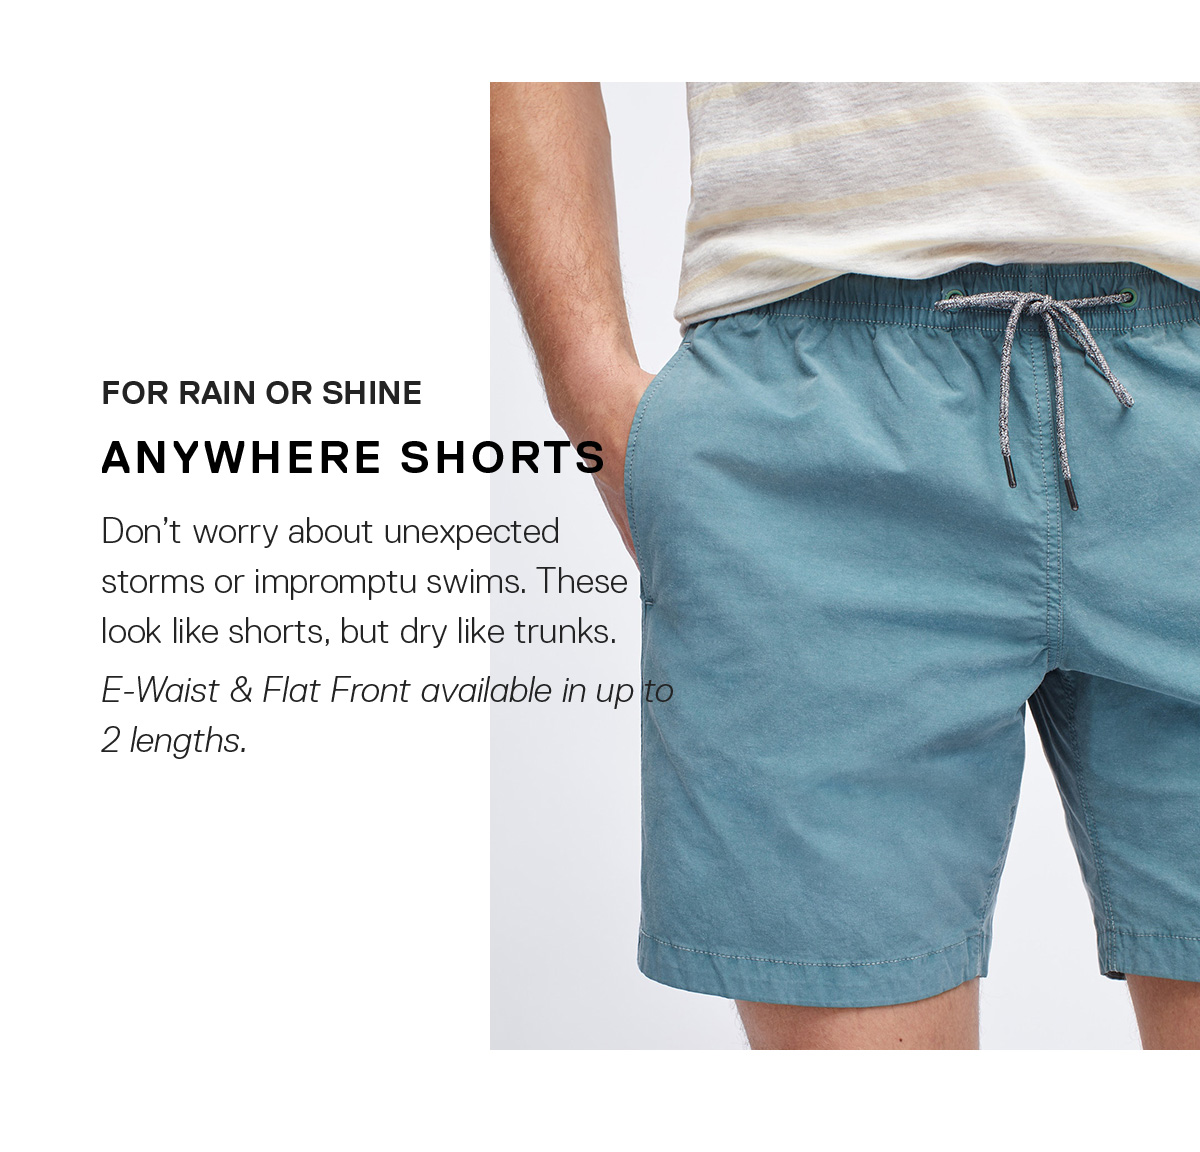 For Rain or Shine: Anywhere Shorts / Don't worry about unexpected storms or impromptu swims. These look like shorts, but dry like trunks.